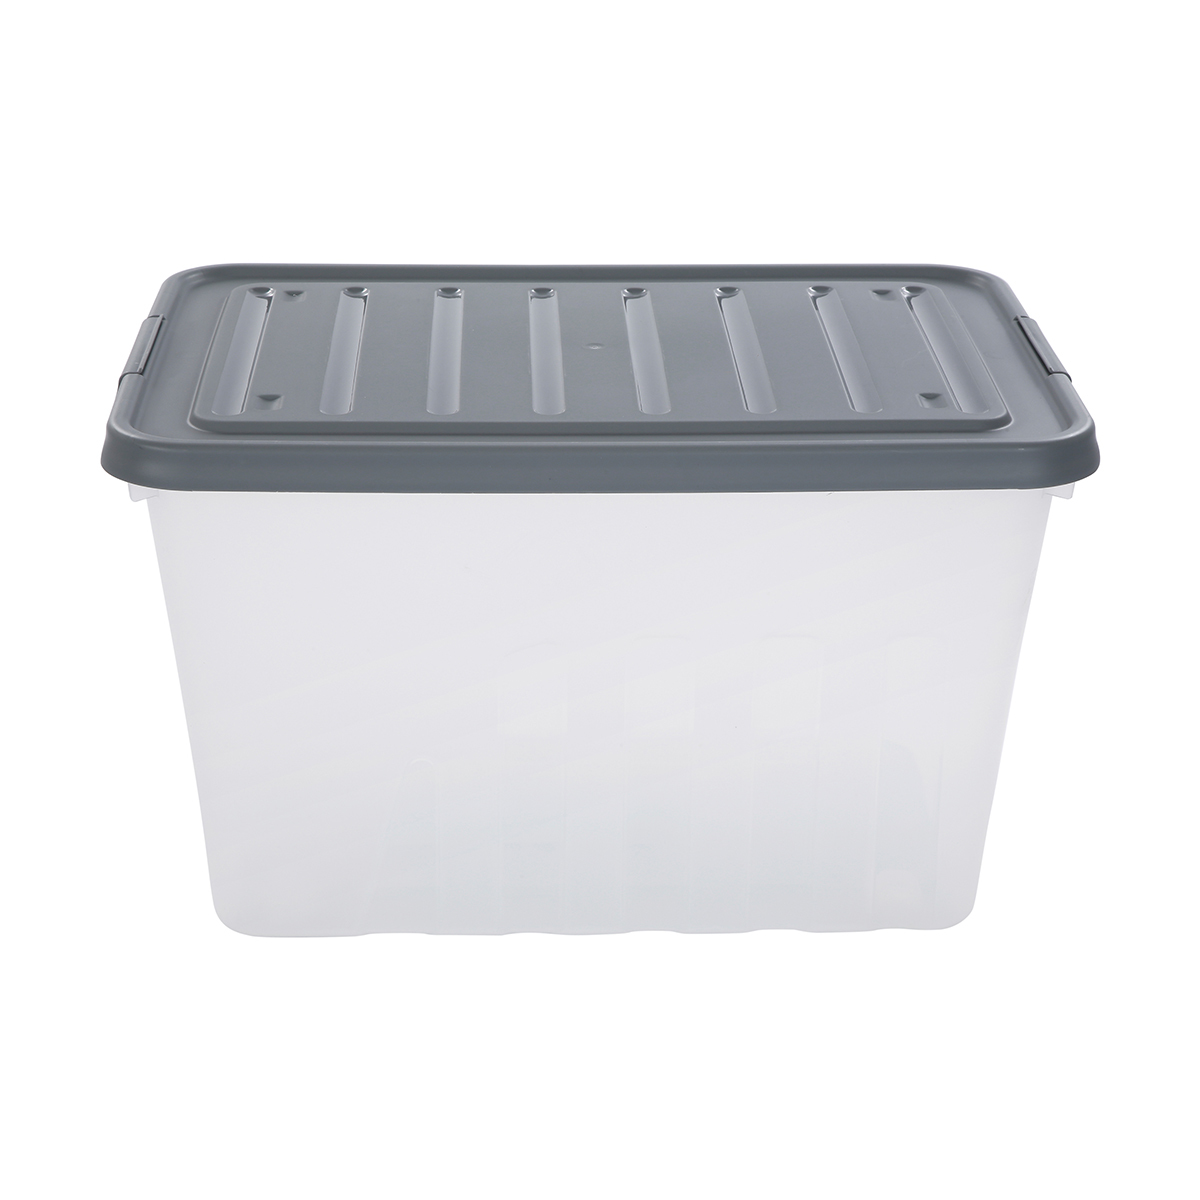 53l Storage Container Kmart Small Storage Containers Storage